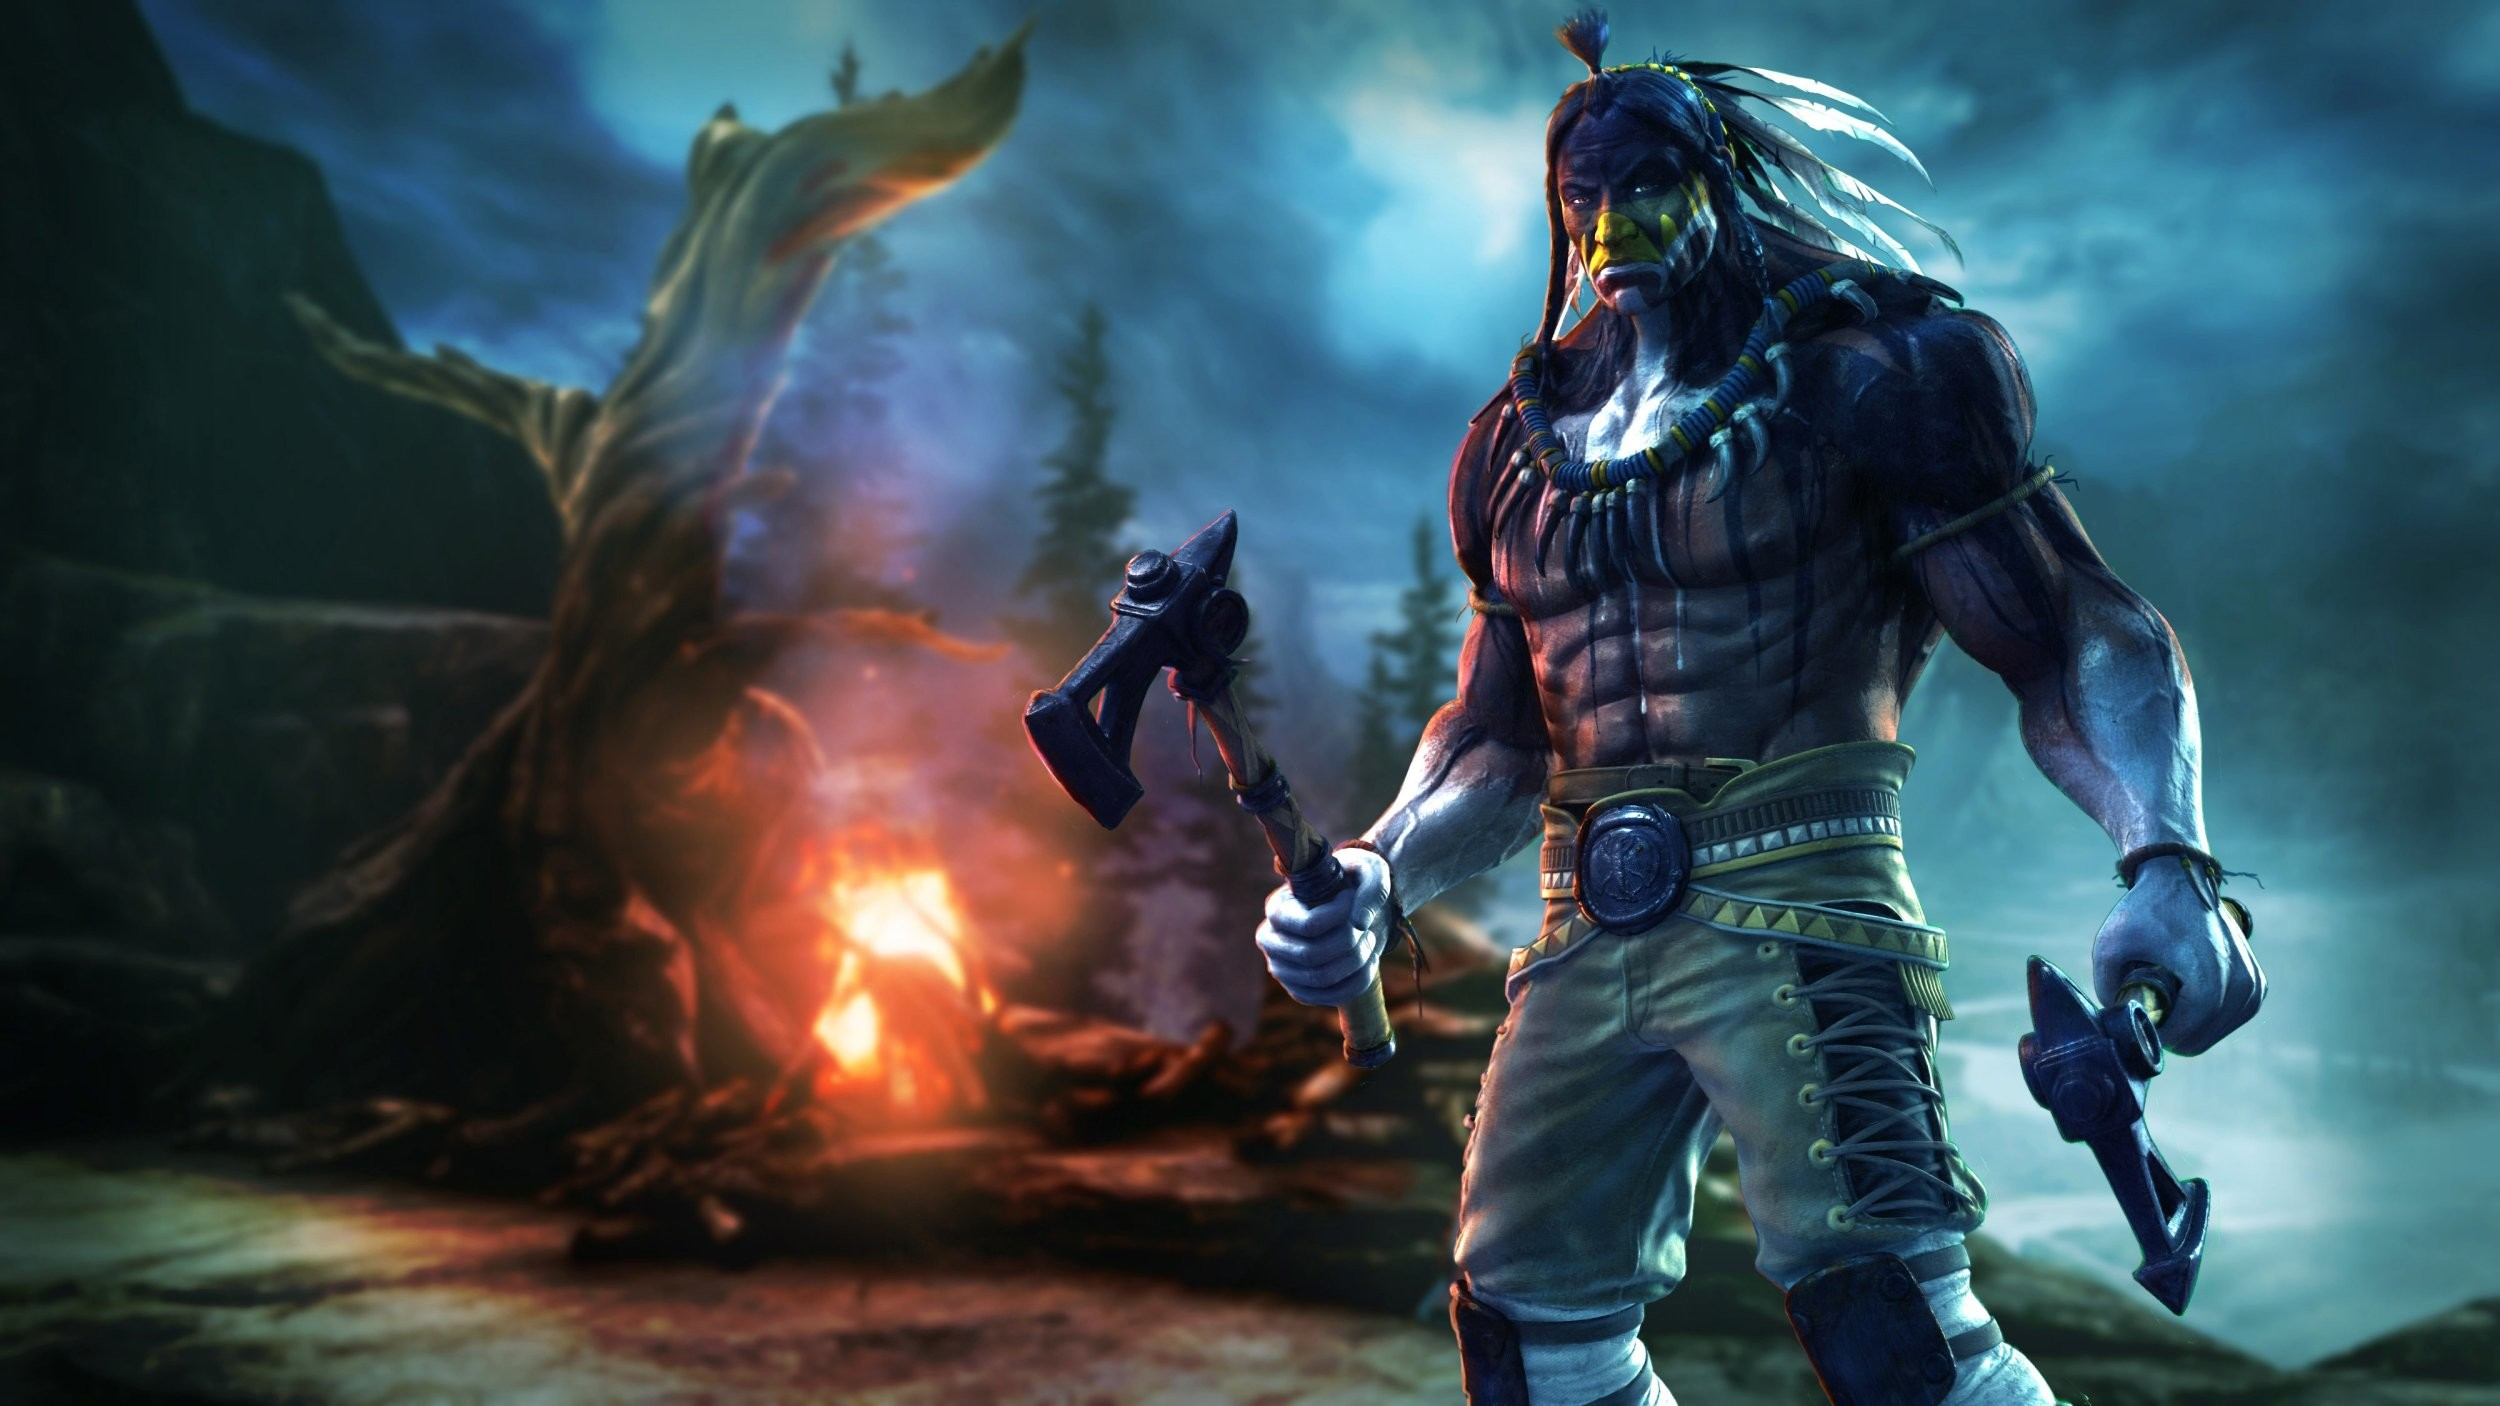 Killer Instinct Xbox One, HDQ Cover Images, Aled Gerber